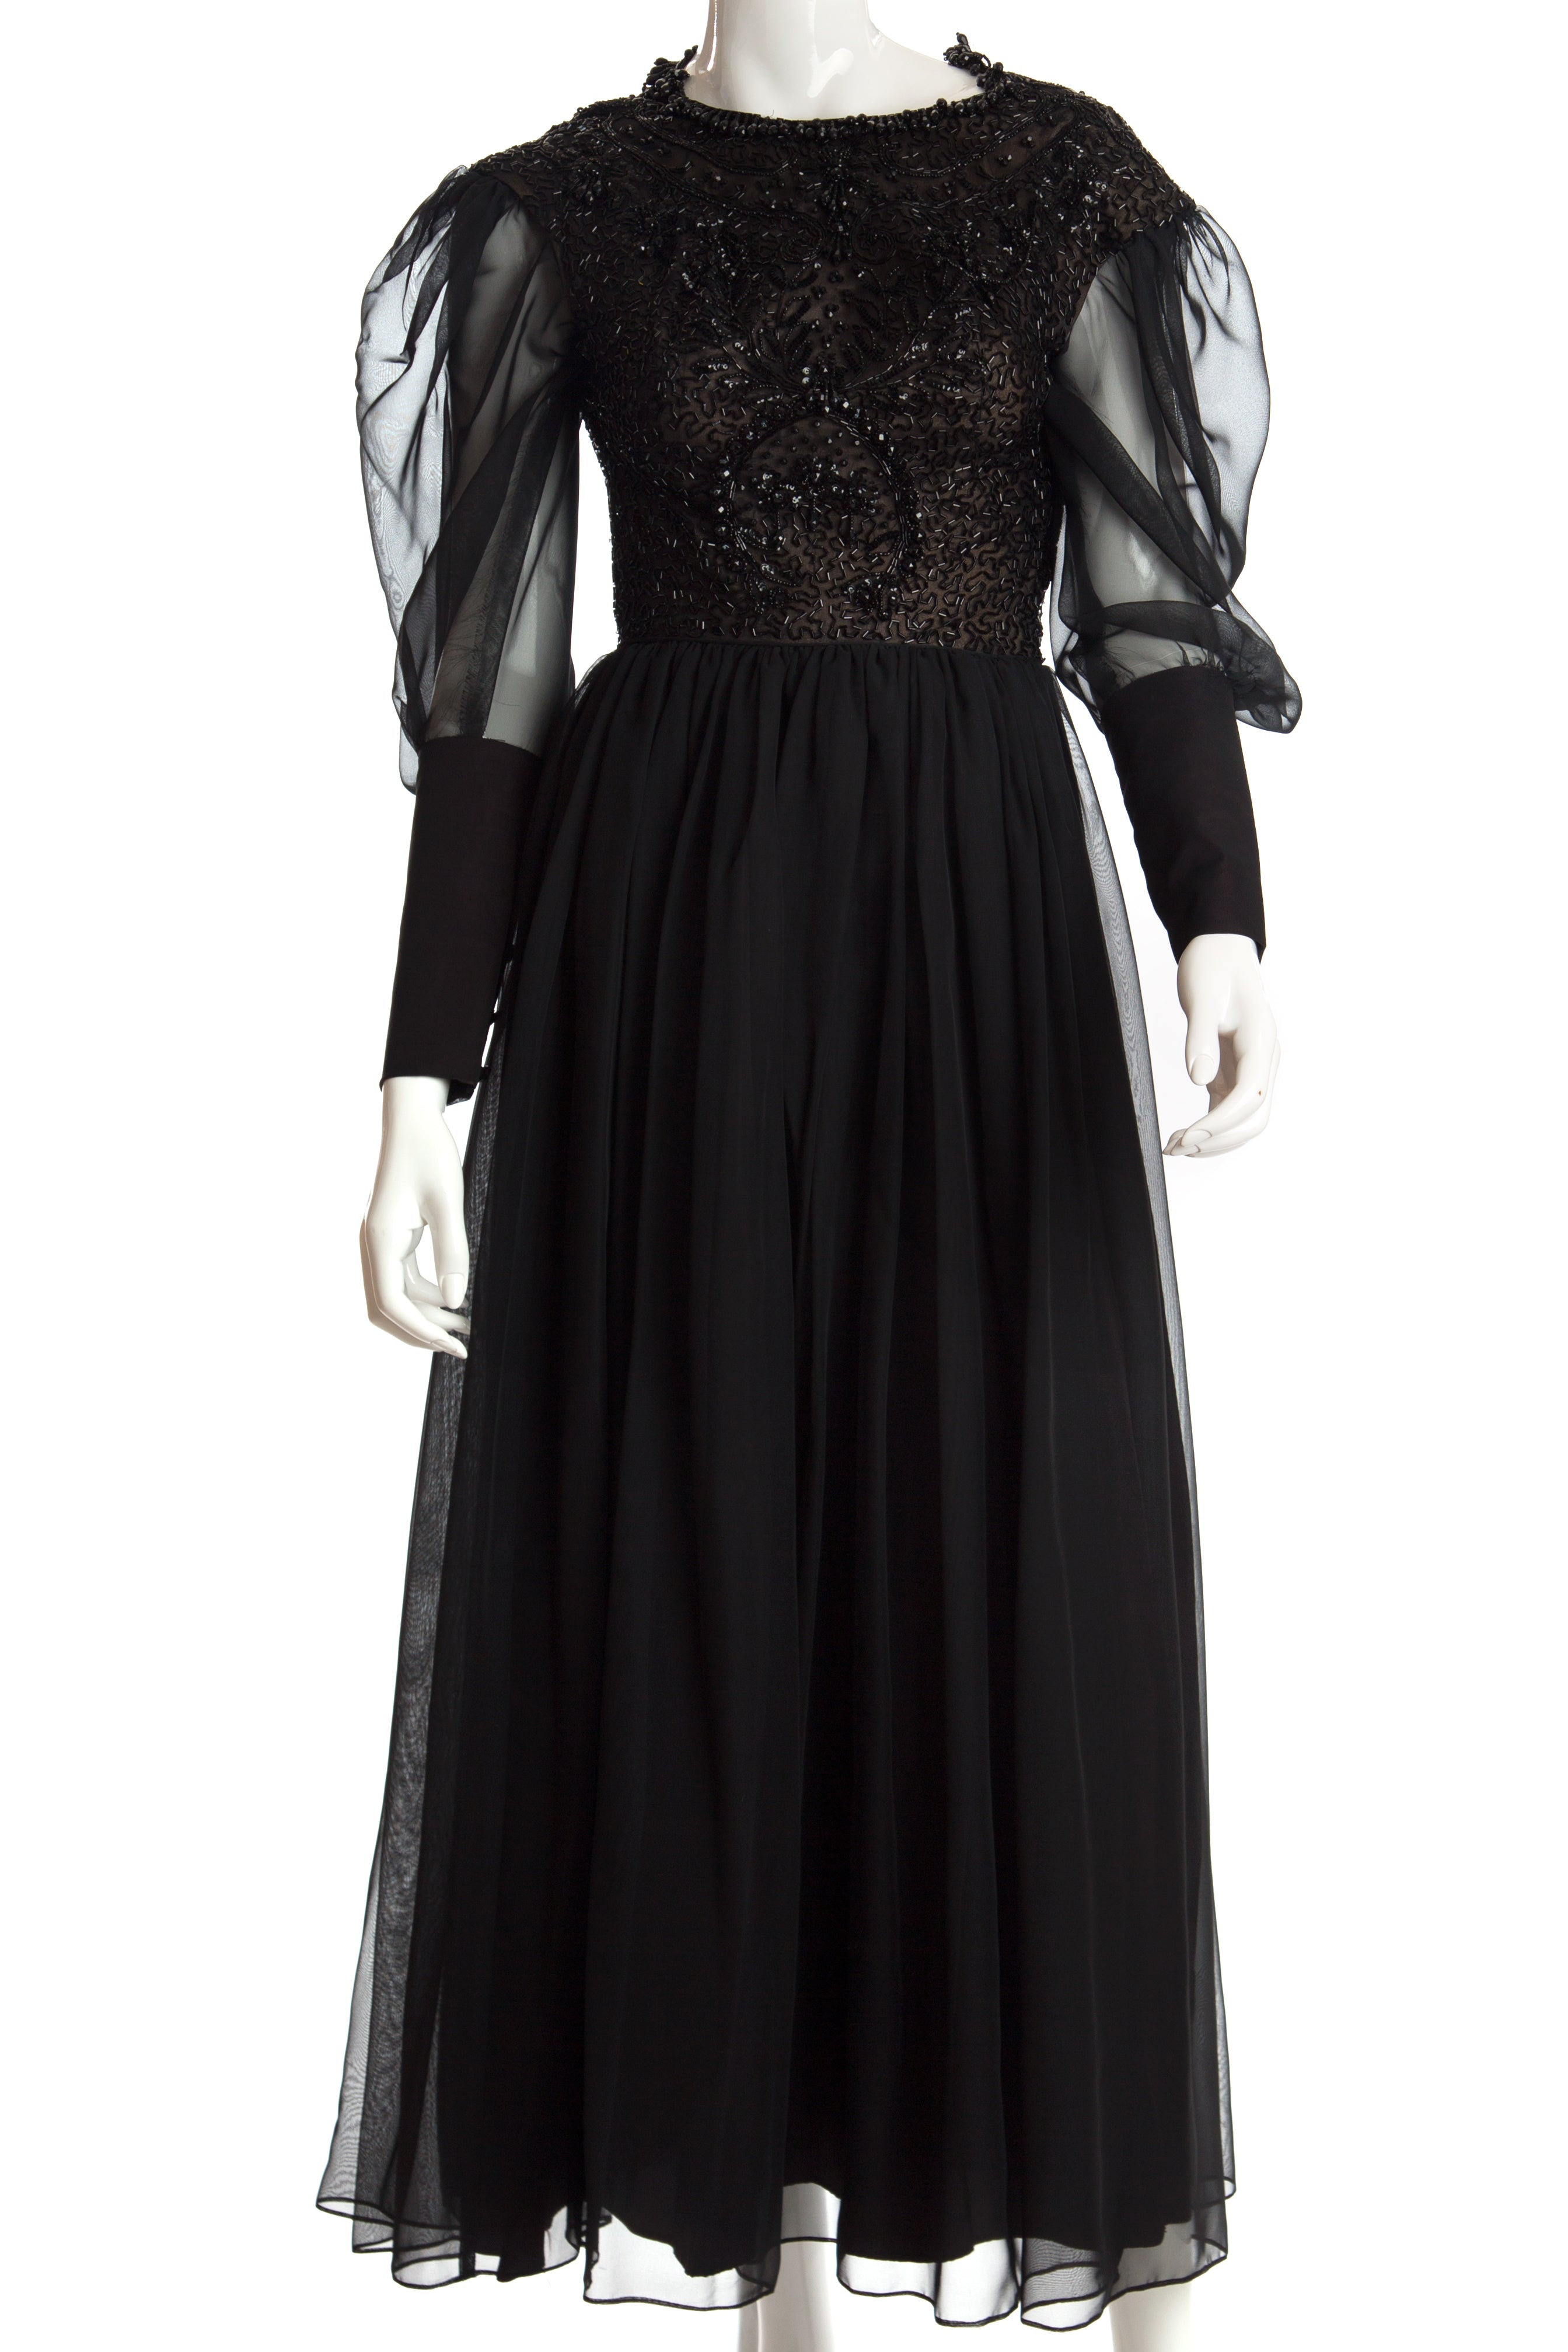 Vintage - Chiffon Evening Gown with Heavily Beaded Bodice